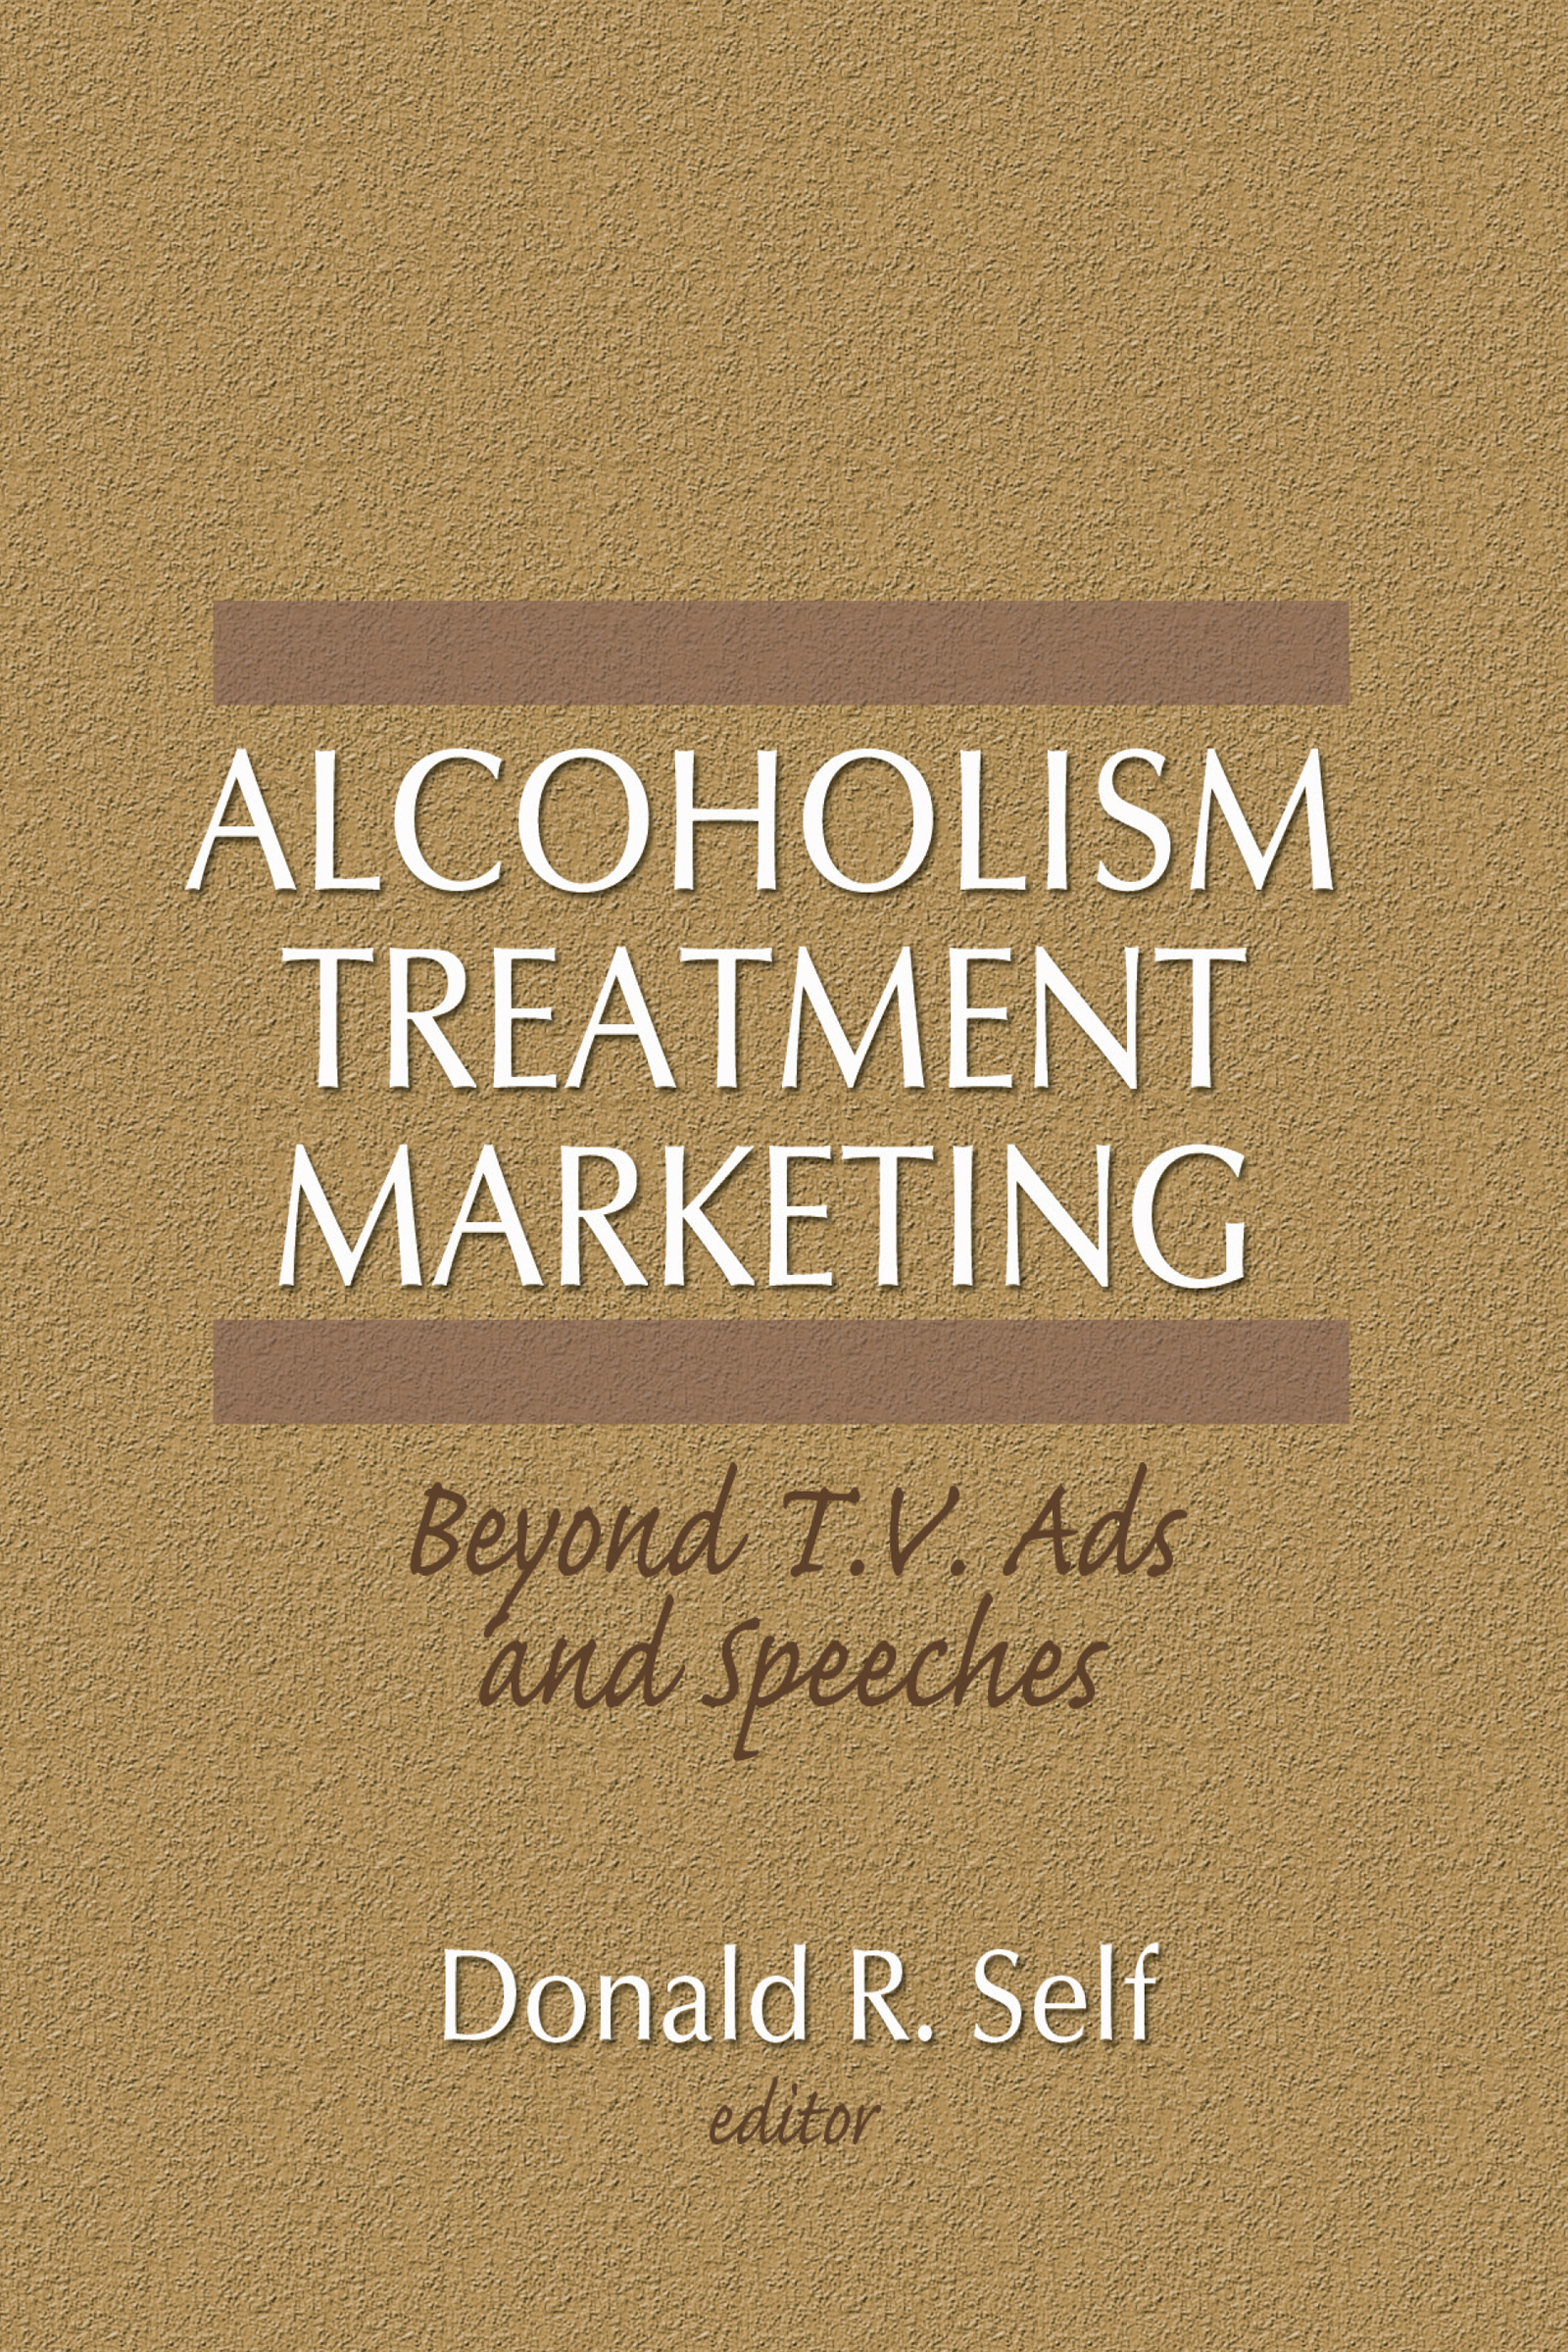 Alcoholism Treatment Marketing: Beyond T.V. Ads and Speeches, 1st Edition (Hardback) book cover